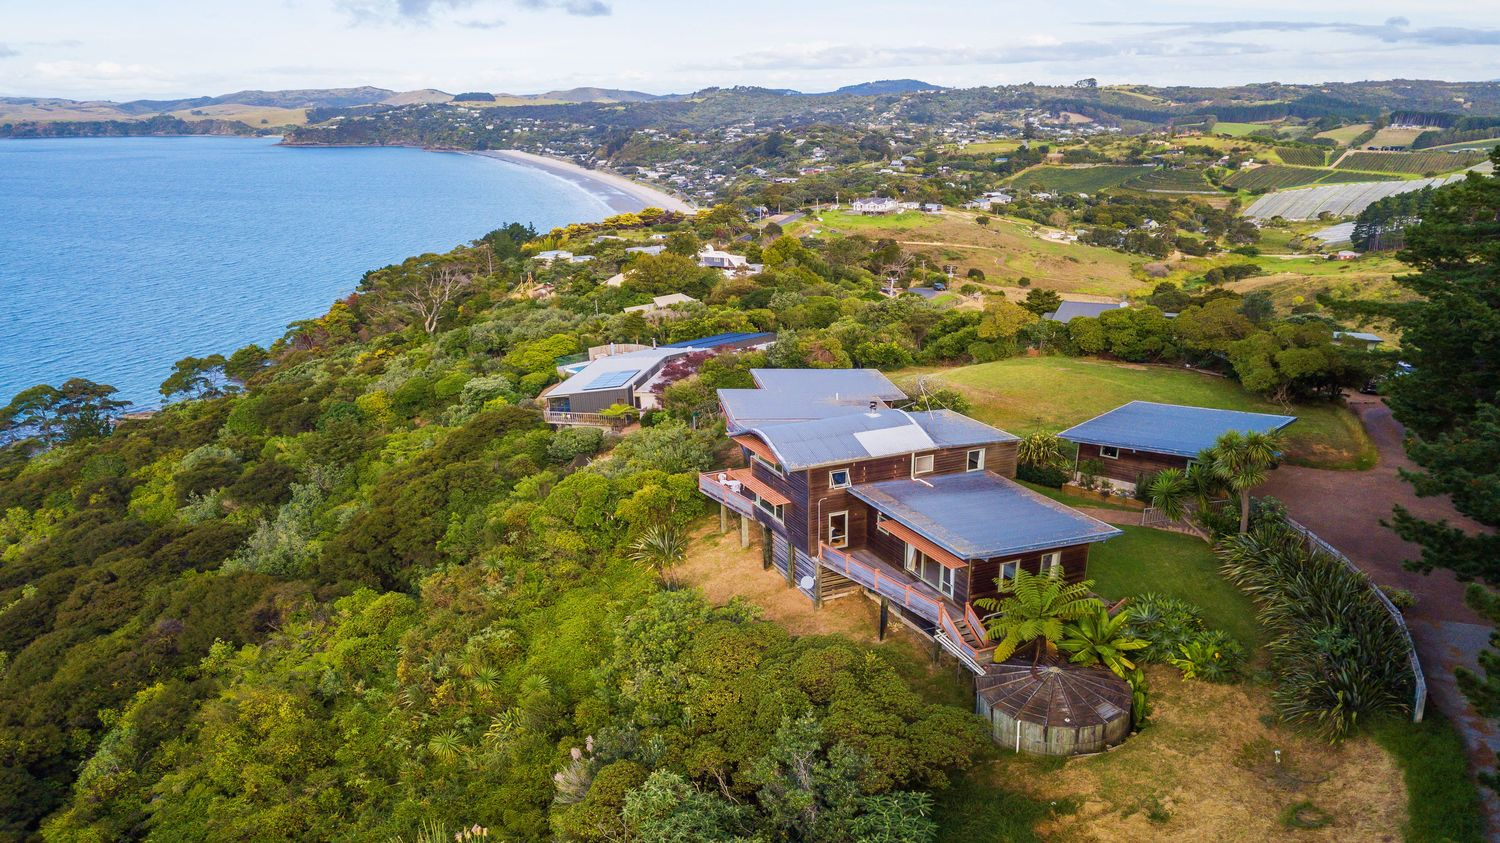 14._Seaview_drone_image_from_sky_with_side_image_of_house_1500x843.jpeg